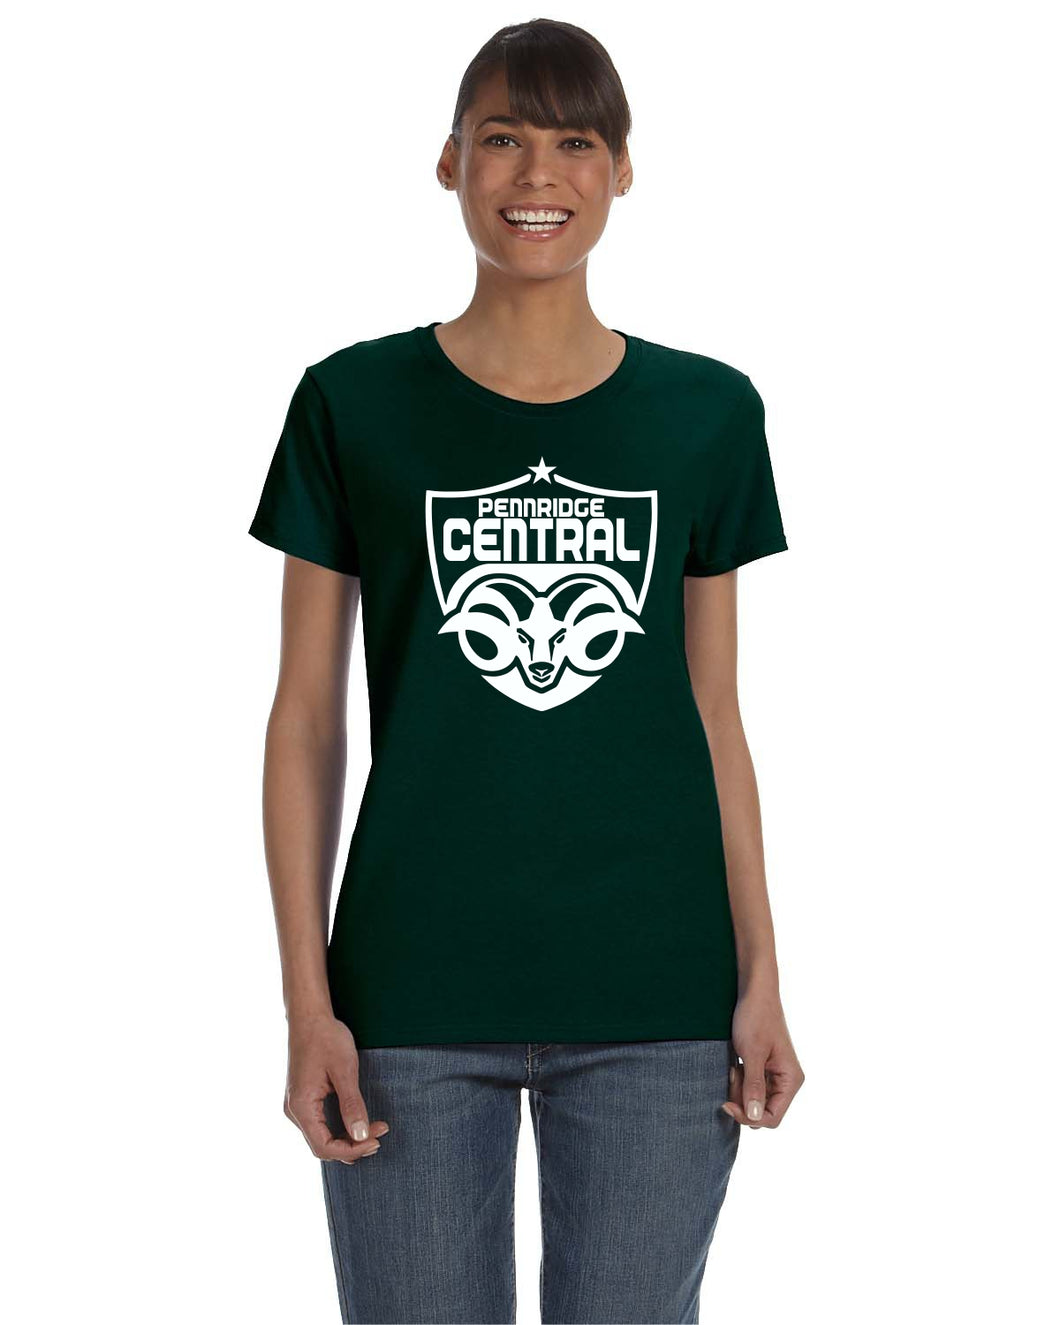 PC Ladies Tshirt, Short Sleeve or Long Sleeve G500